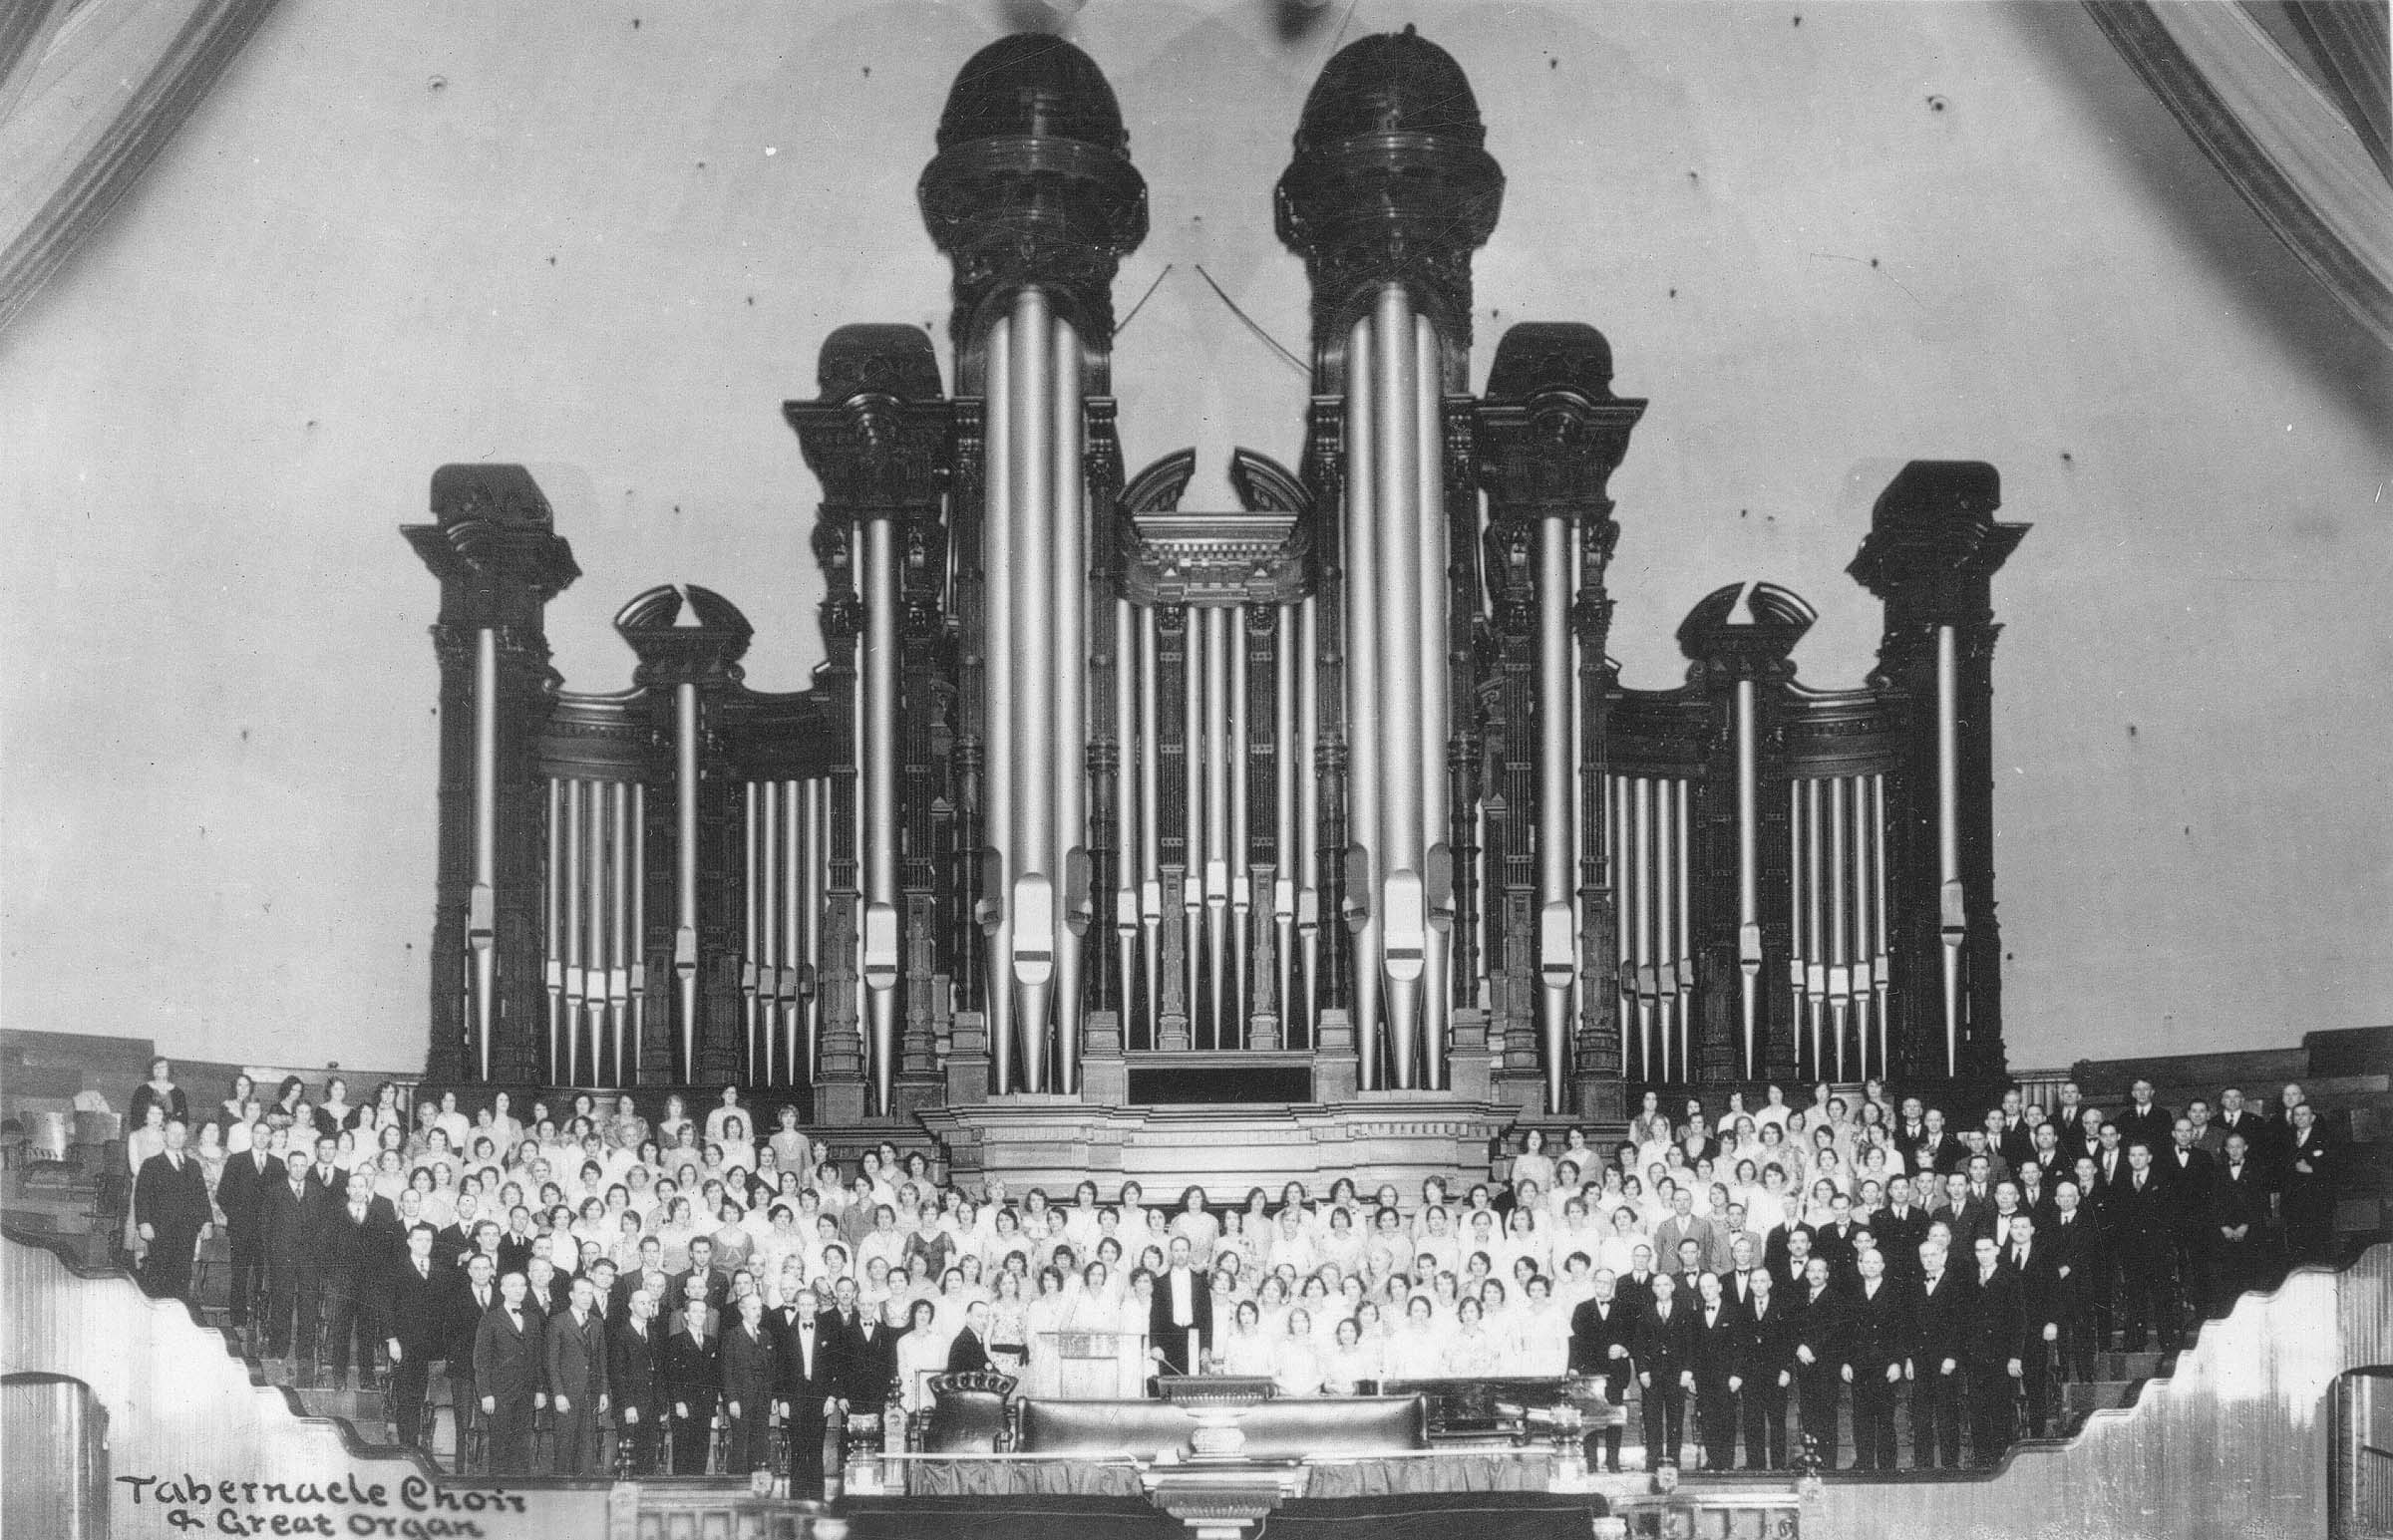 The Mormon Tabernacle Choir in the Salt Lake Tabernacle in 1929. The choir began broadcasting Music and the Spoken Word 90 years ago, making it the longest continuously broadcast network program in history.